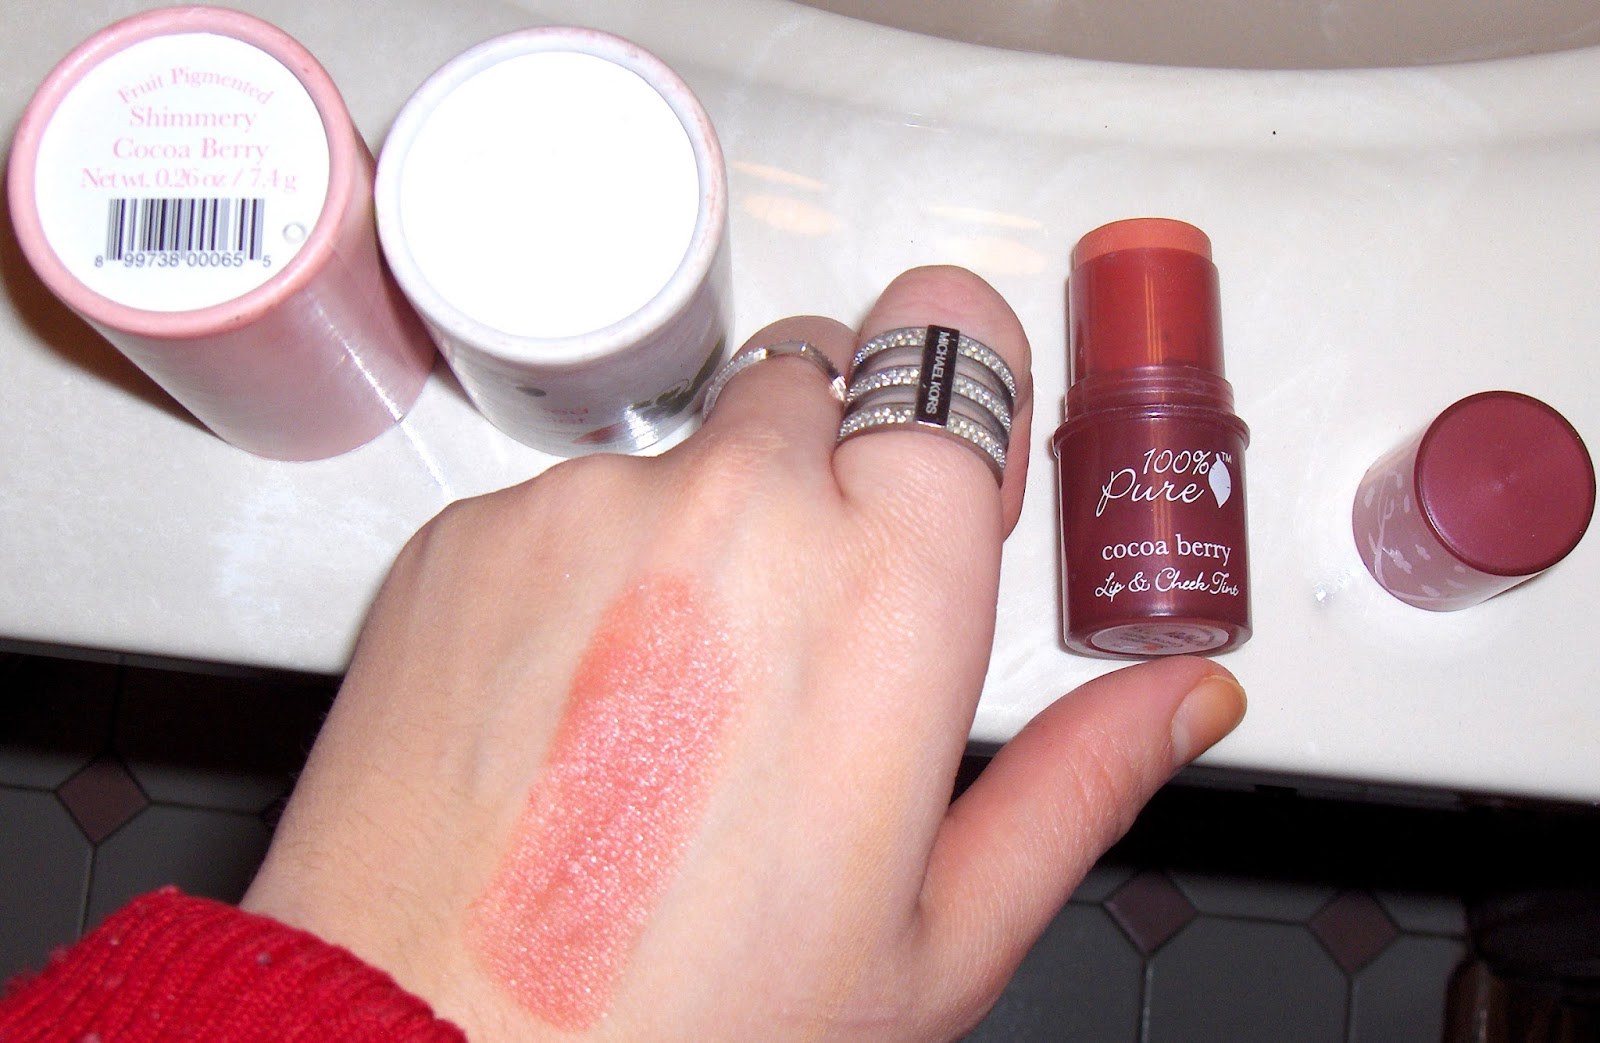 Fruit Pigmented Lip & Cheek Tint by 100% pure #7